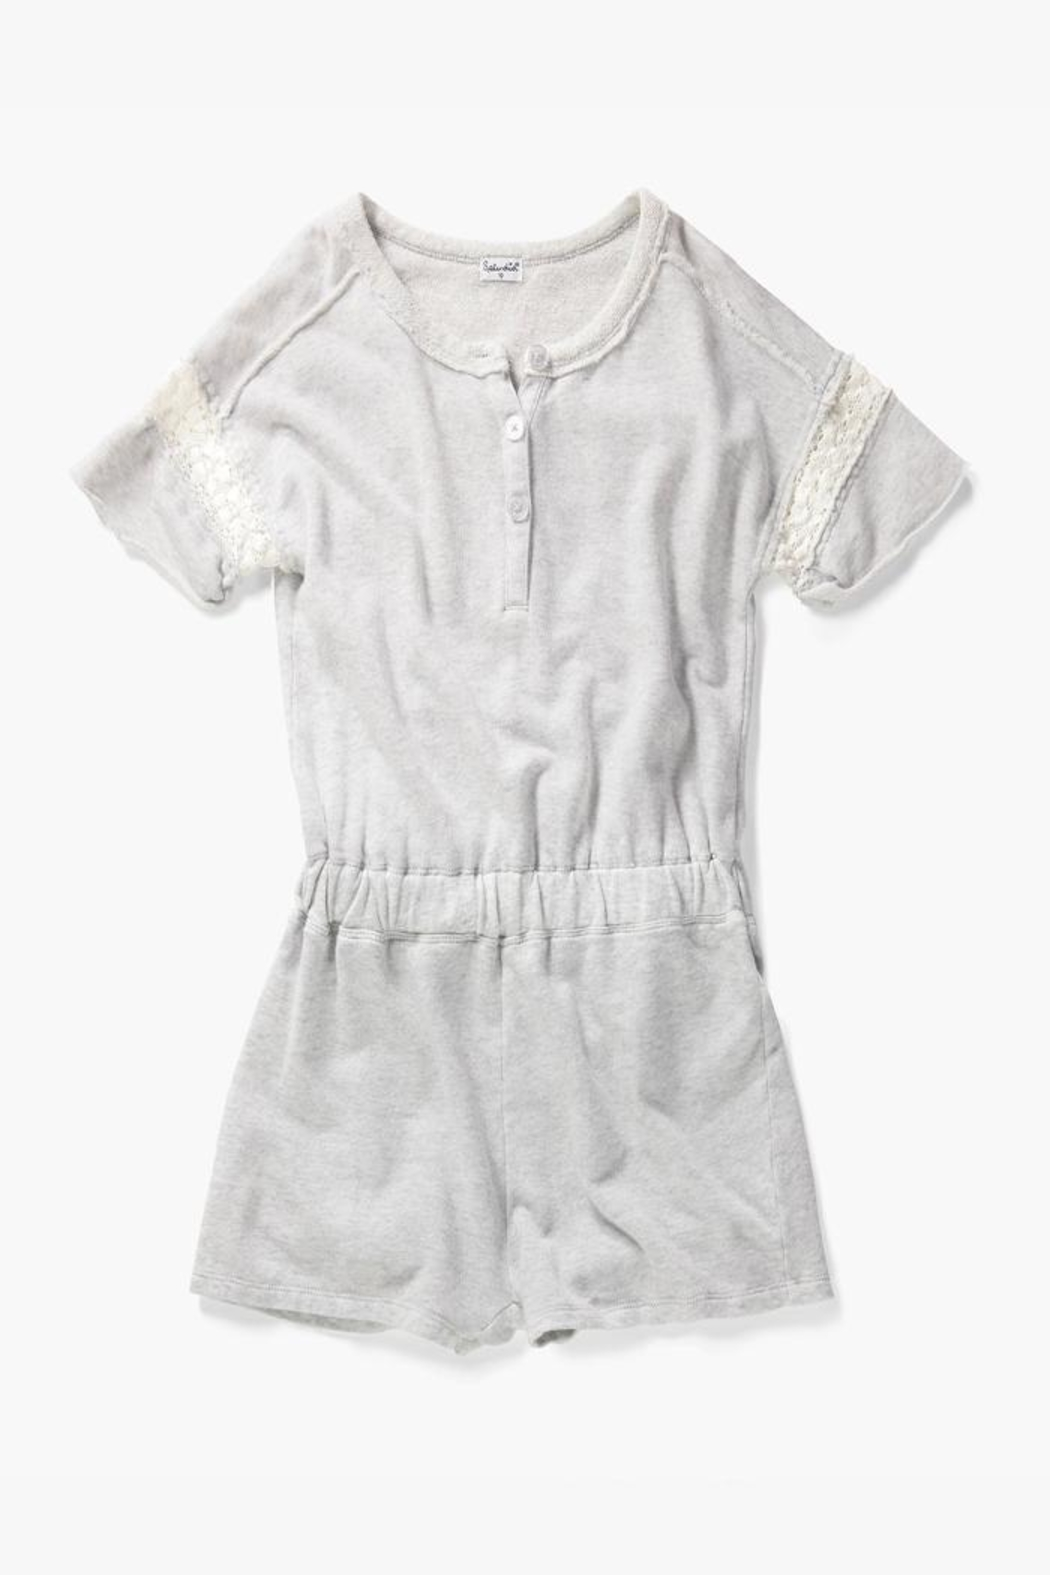 Splendid Littles Romper With Lace - Main Image